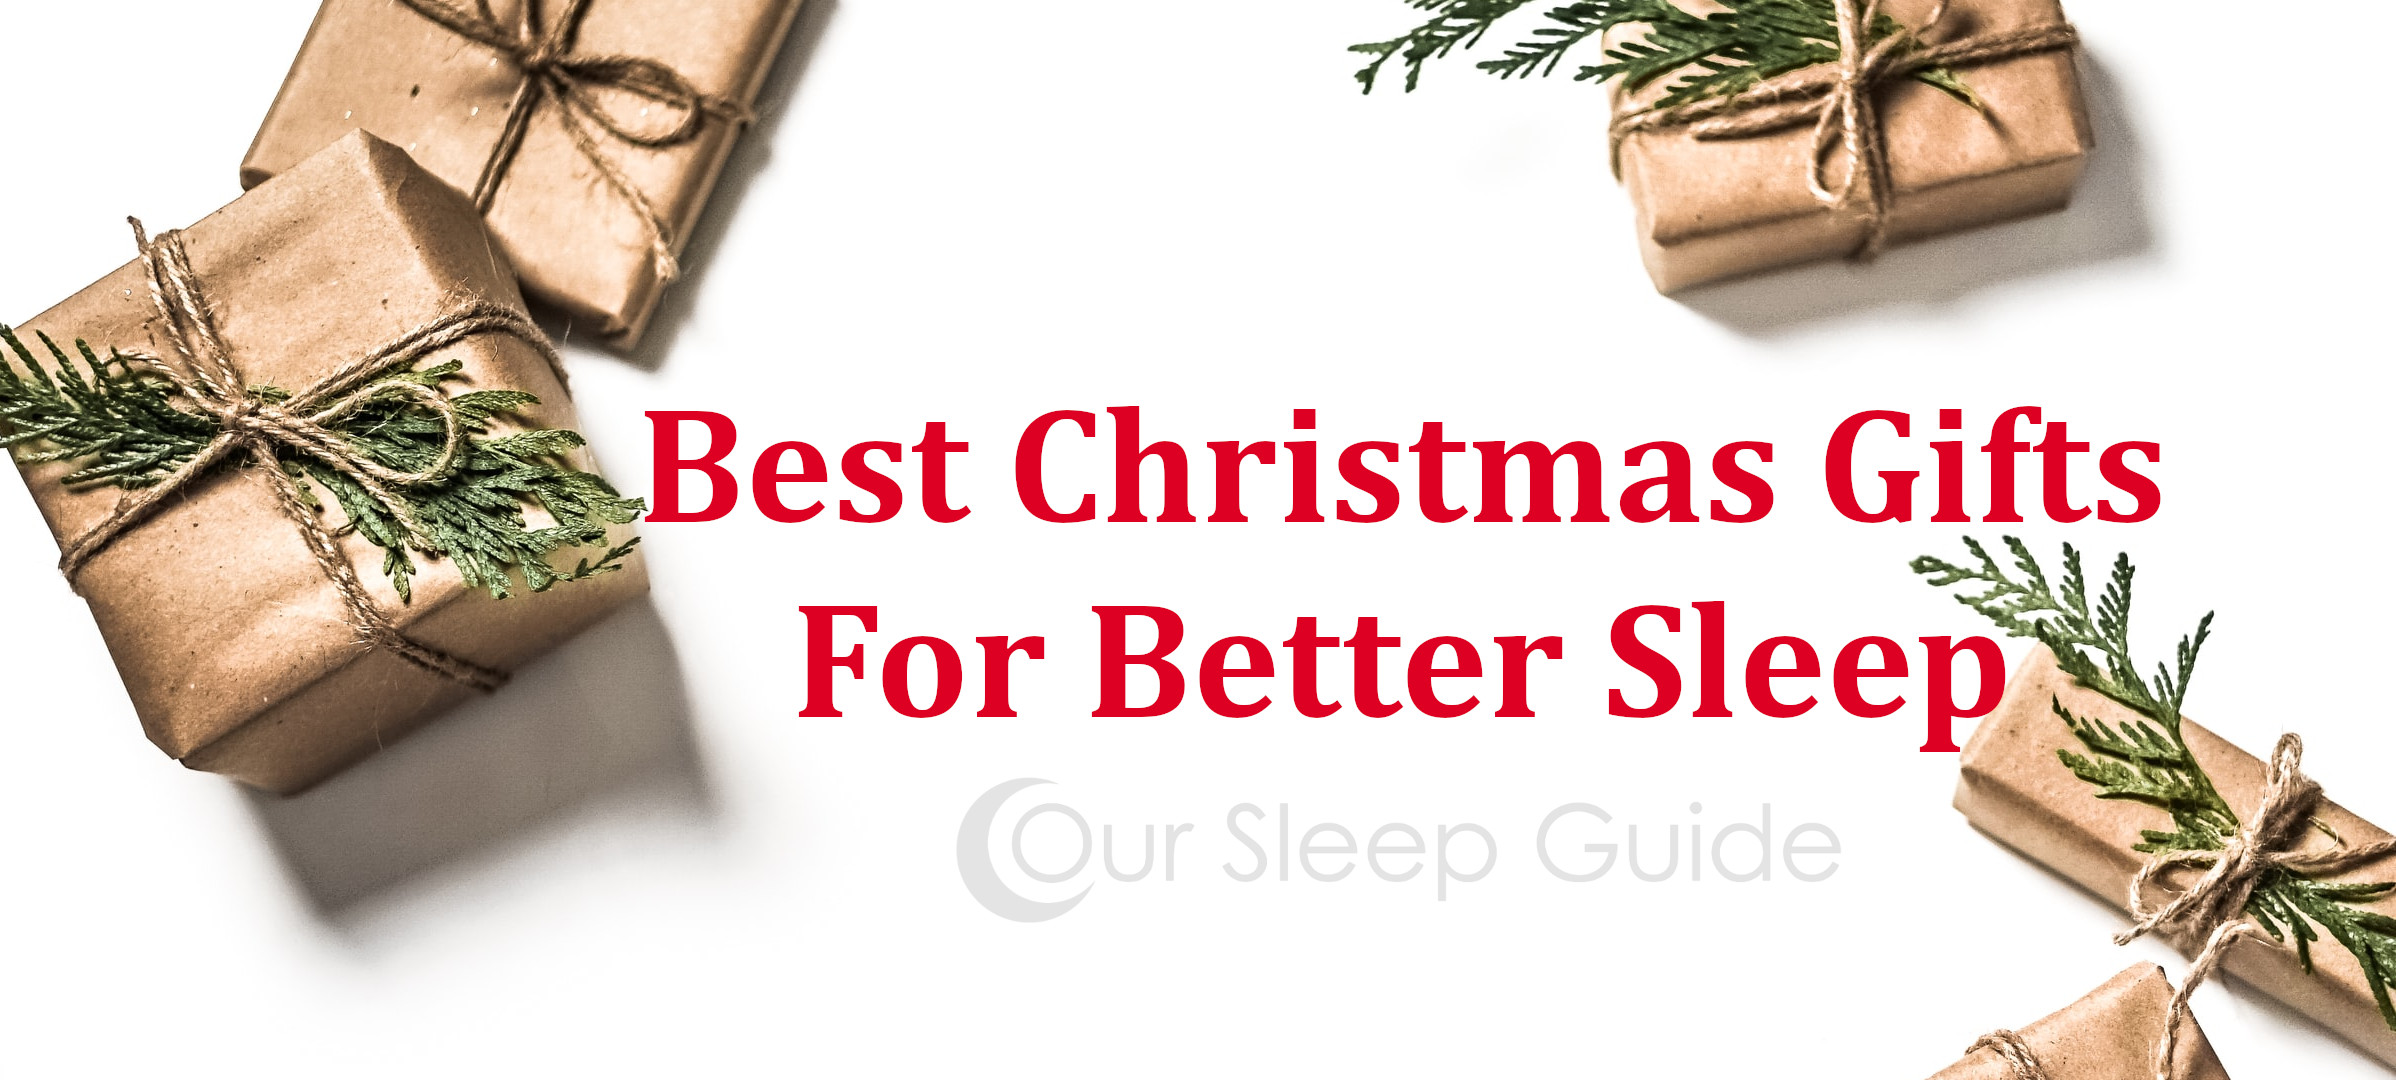 Best Christmas Gifts For Better Sleep